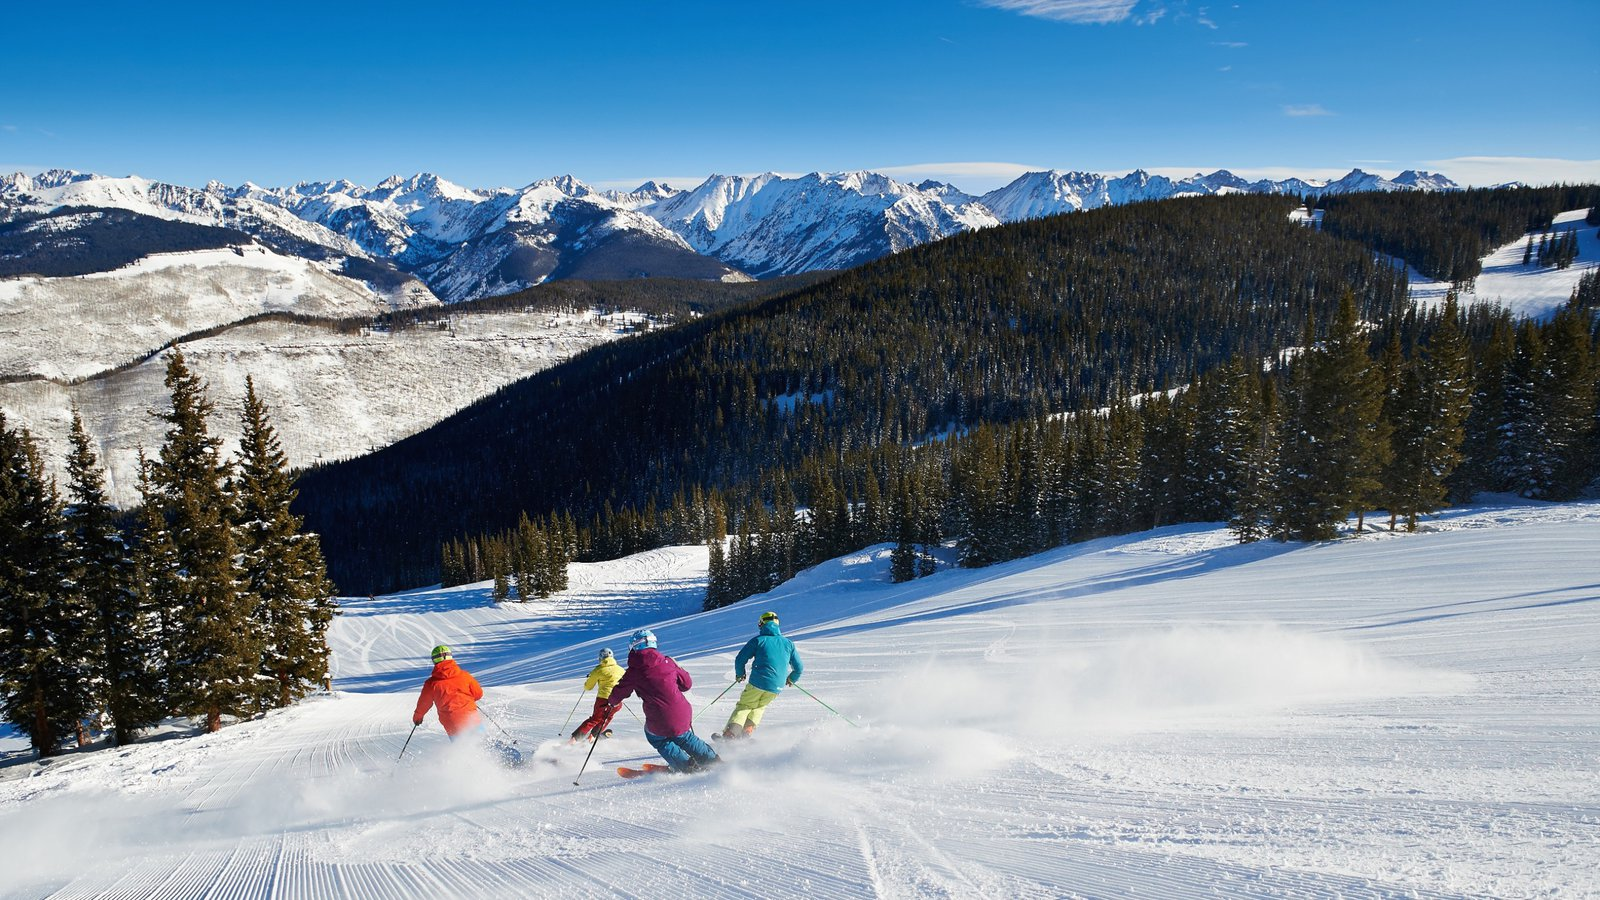 singles in vail Best things to do in vail the majority of vail's visitors come to tackle the slopes the vail ski resort boasts 5,289 skiable acres, making it one of the largest single-mountain resorts in the .